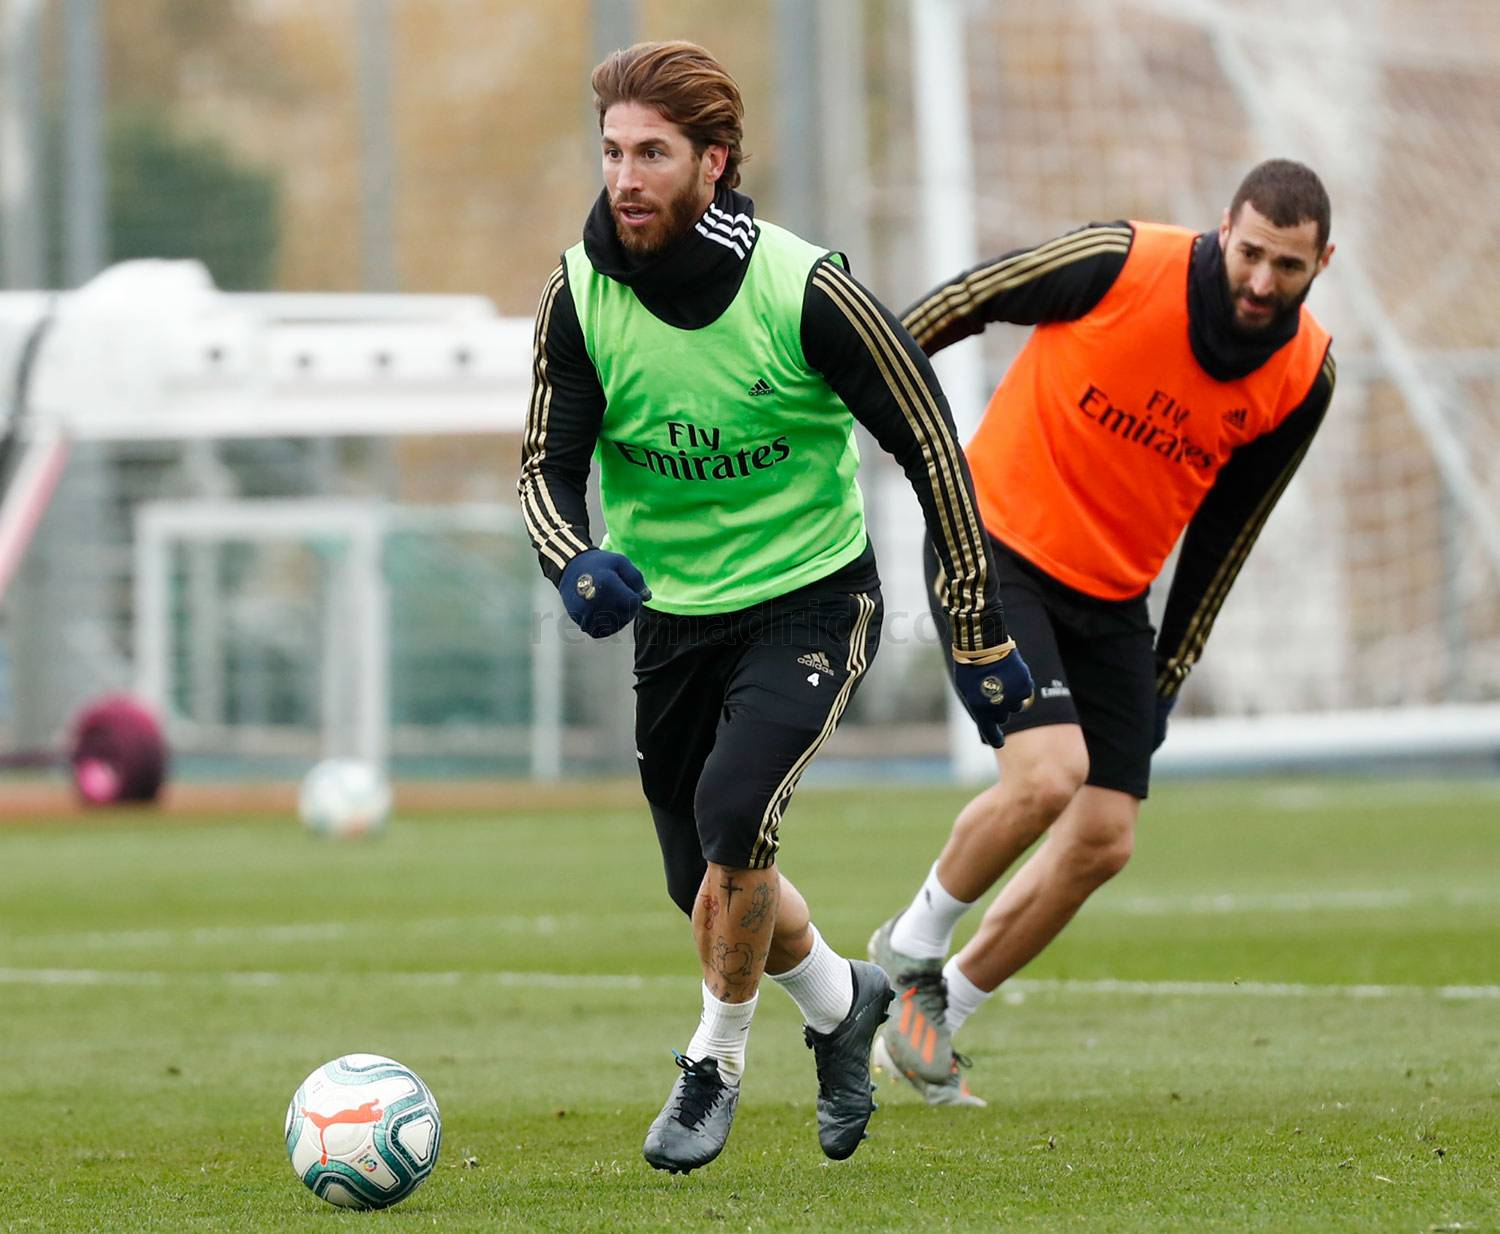 Real Madrid - Entrenamiento del Real Madrid  - 22-11-2019